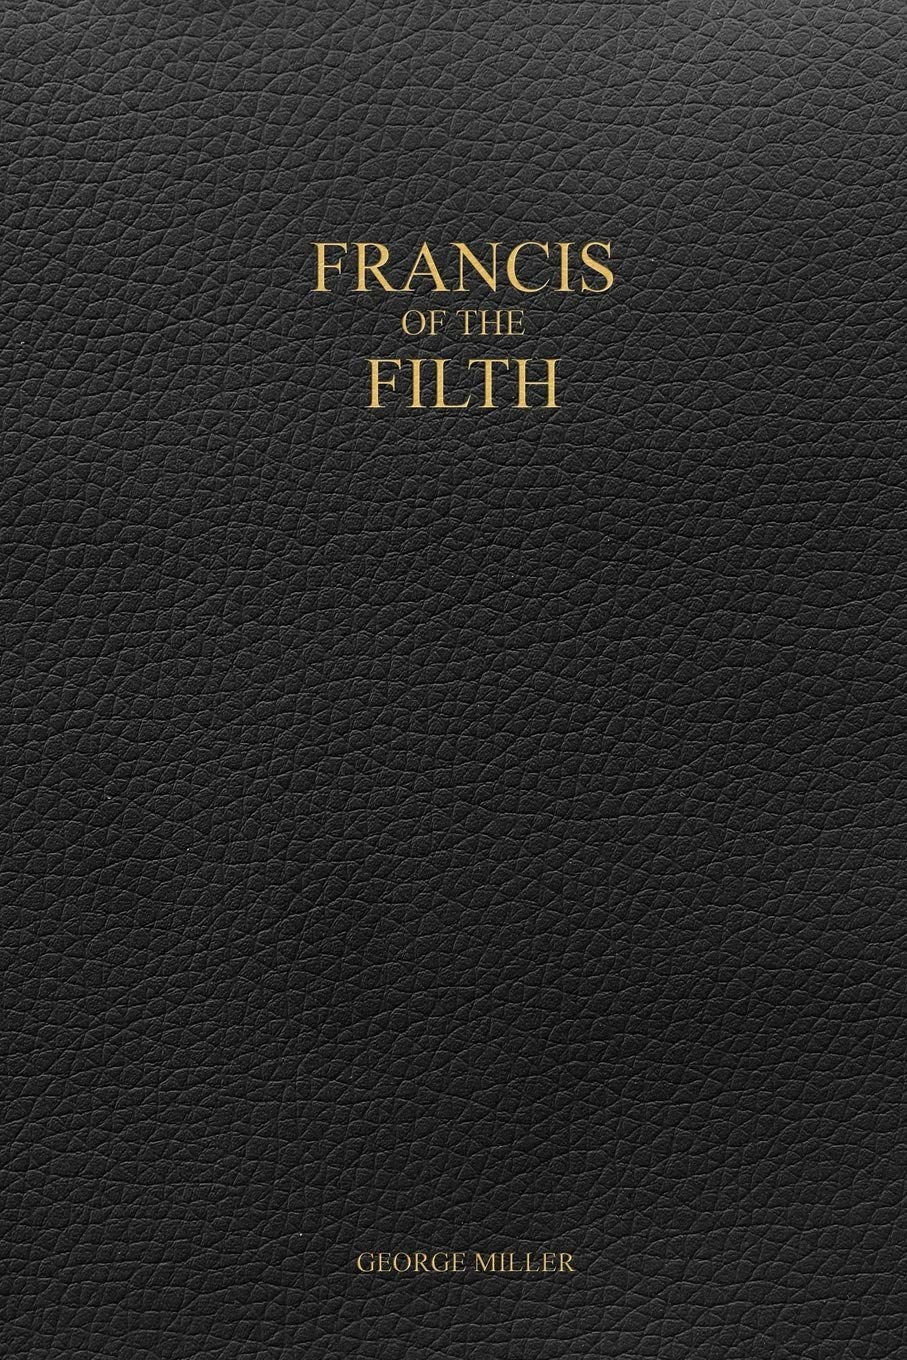 Francis of the Filth: George Miller: 9781387159505: Amazon ...